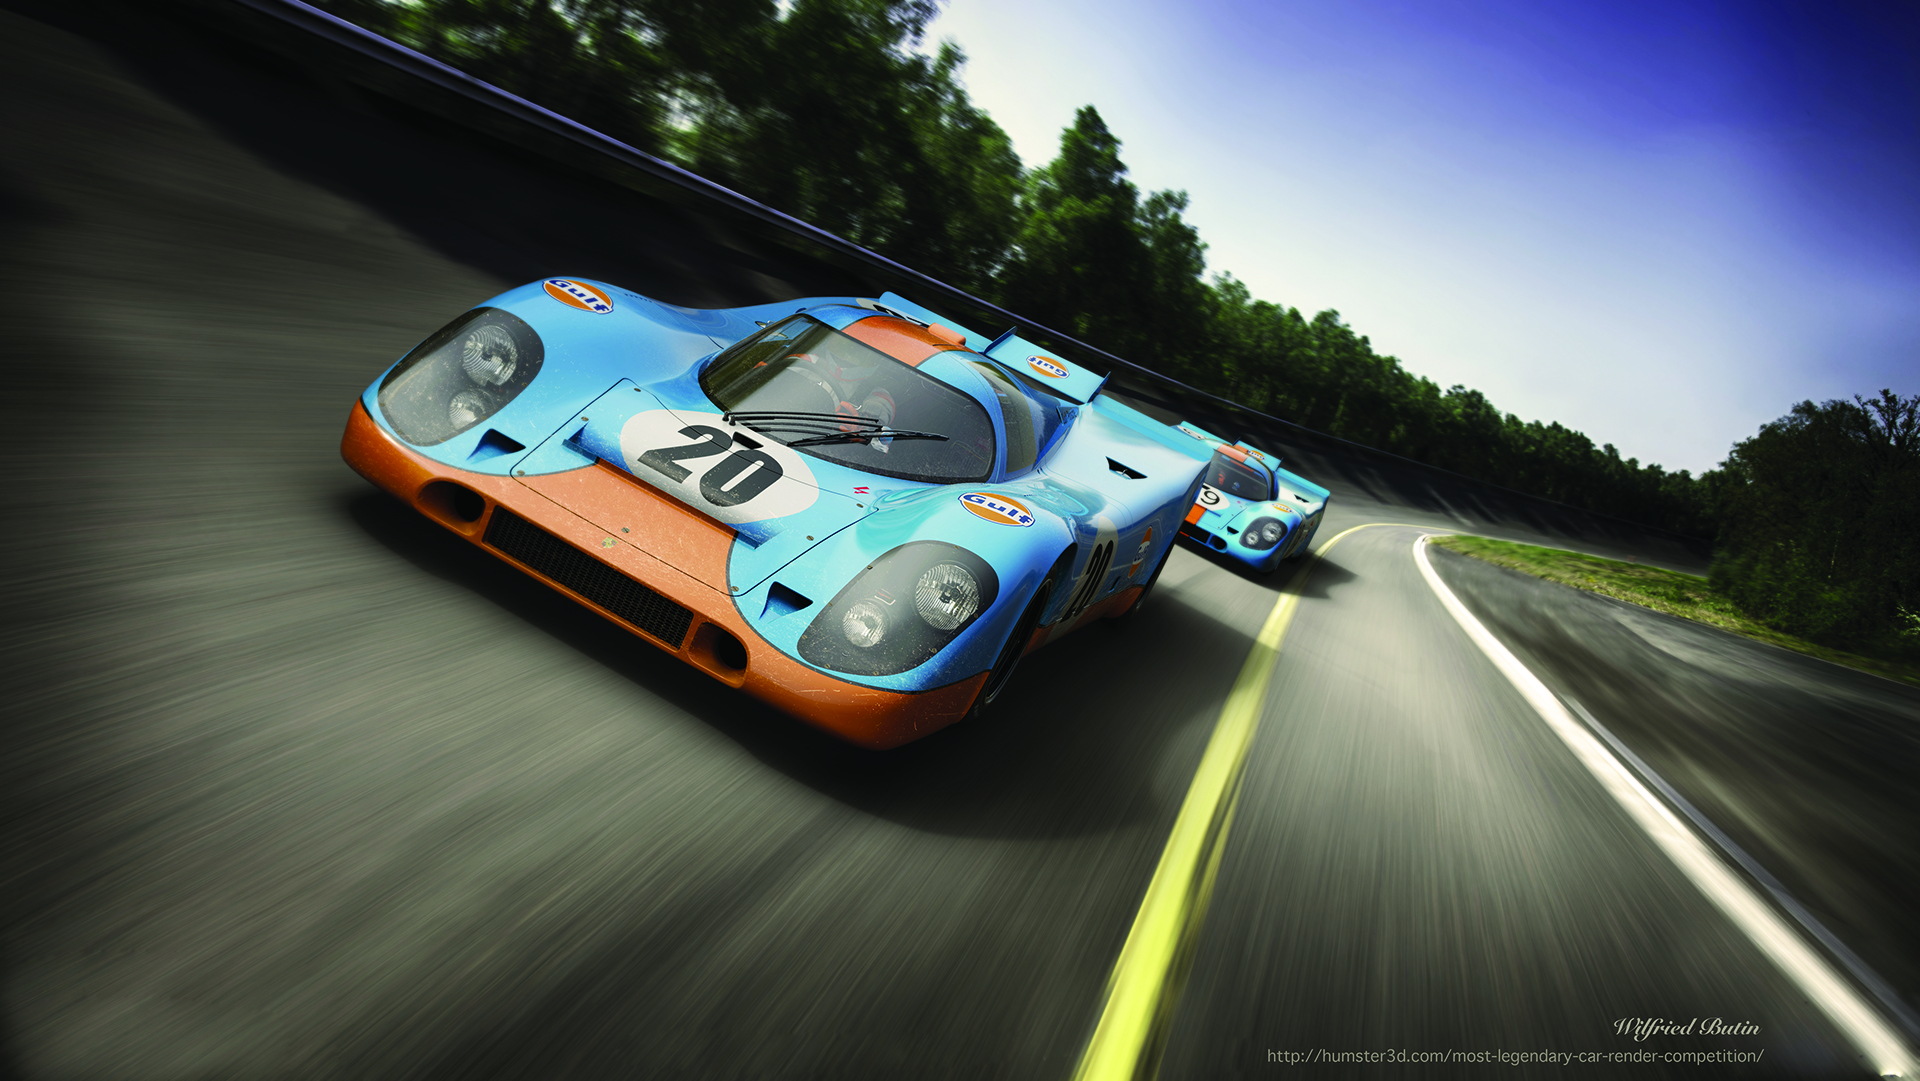 The iconic 917 K